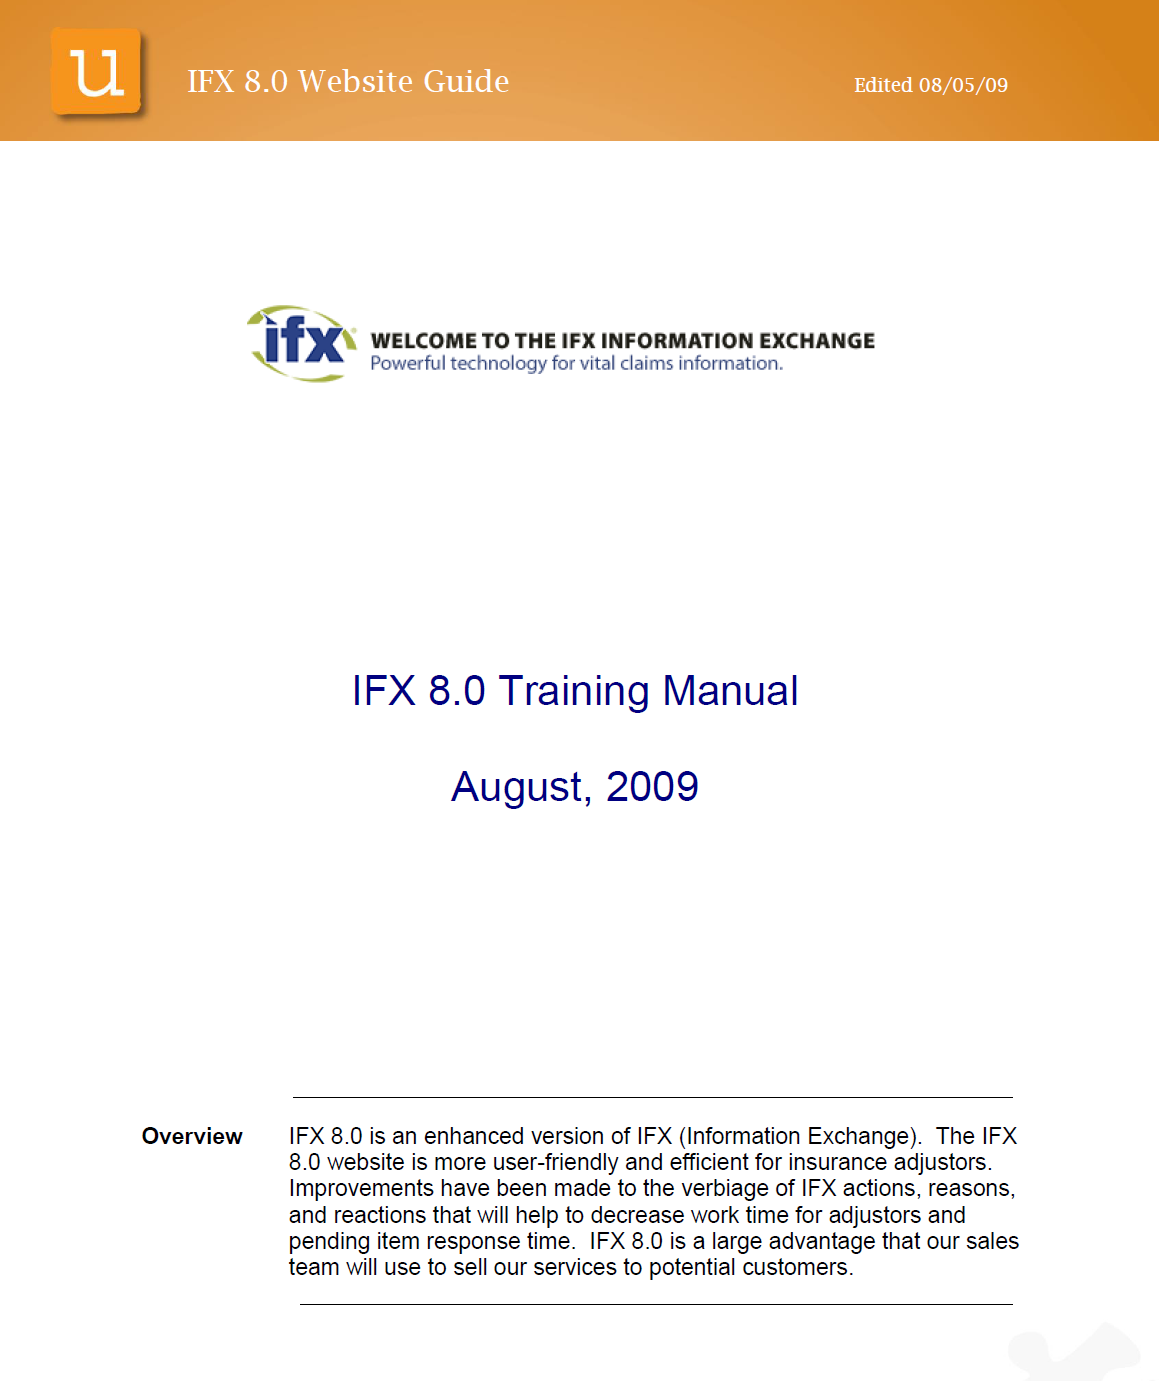 Task + Solution - Create a training manual for company-wide use on an updated version of software. The software provides insurance adjusters increased efficiency in communication.I partnered with subject matter experts and used the Beta site to create the manual on time. I taught in-person courses on the subject matter to roll out the changes seemlessly.Click image to view.